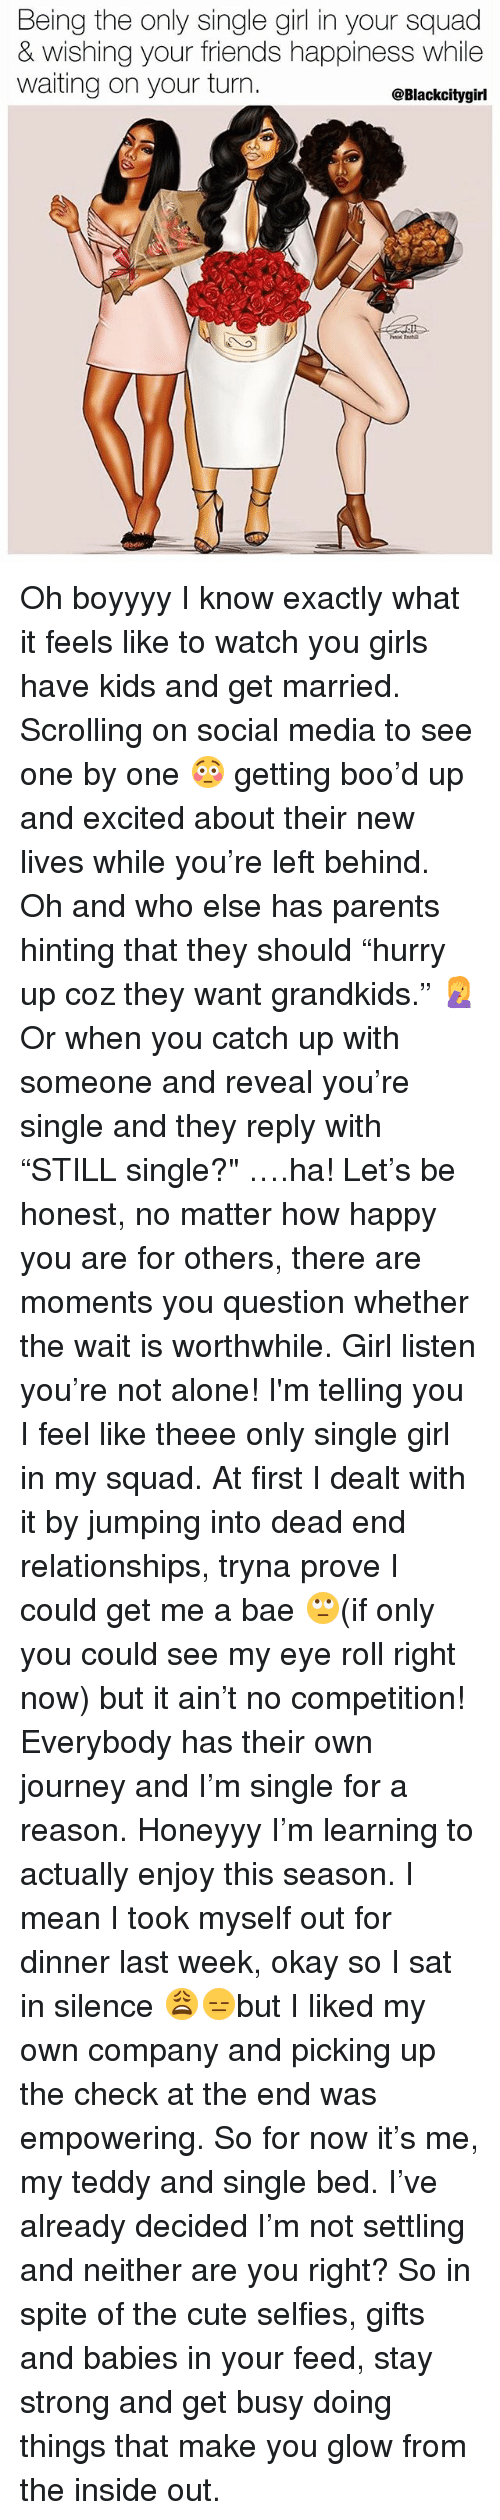 "Being Alone, Bae, and Boo: Being the only single girl in your squad  & wishing your friends happiness while  waiting on your turn  @Blackcitygirl Oh boyyyy I know exactly what it feels like to watch you girls have kids and get married. Scrolling on social media to see one by one 😳 getting boo'd up and excited about their new lives while you're left behind. Oh and who else has parents hinting that they should ""hurry up coz they want grandkids."" 🤦‍♀️ Or when you catch up with someone and reveal you're single and they reply with ""STILL single?"" ….ha! Let's be honest, no matter how happy you are for others, there are moments you question whether the wait is worthwhile. Girl listen you're not alone! I'm telling you I feel like theee only single girl in my squad. At first I dealt with it by jumping into dead end relationships, tryna prove I could get me a bae 🙄(if only you could see my eye roll right now) but it ain't no competition! Everybody has their own journey and I'm single for a reason. Honeyyy I'm learning to actually enjoy this season. I mean I took myself out for dinner last week, okay so I sat in silence 😩😑but I liked my own company and picking up the check at the end was empowering. So for now it's me, my teddy and single bed. I've already decided I'm not settling and neither are you right? So in spite of the cute selfies, gifts and babies in your feed, stay strong and get busy doing things that make you glow from the inside out."